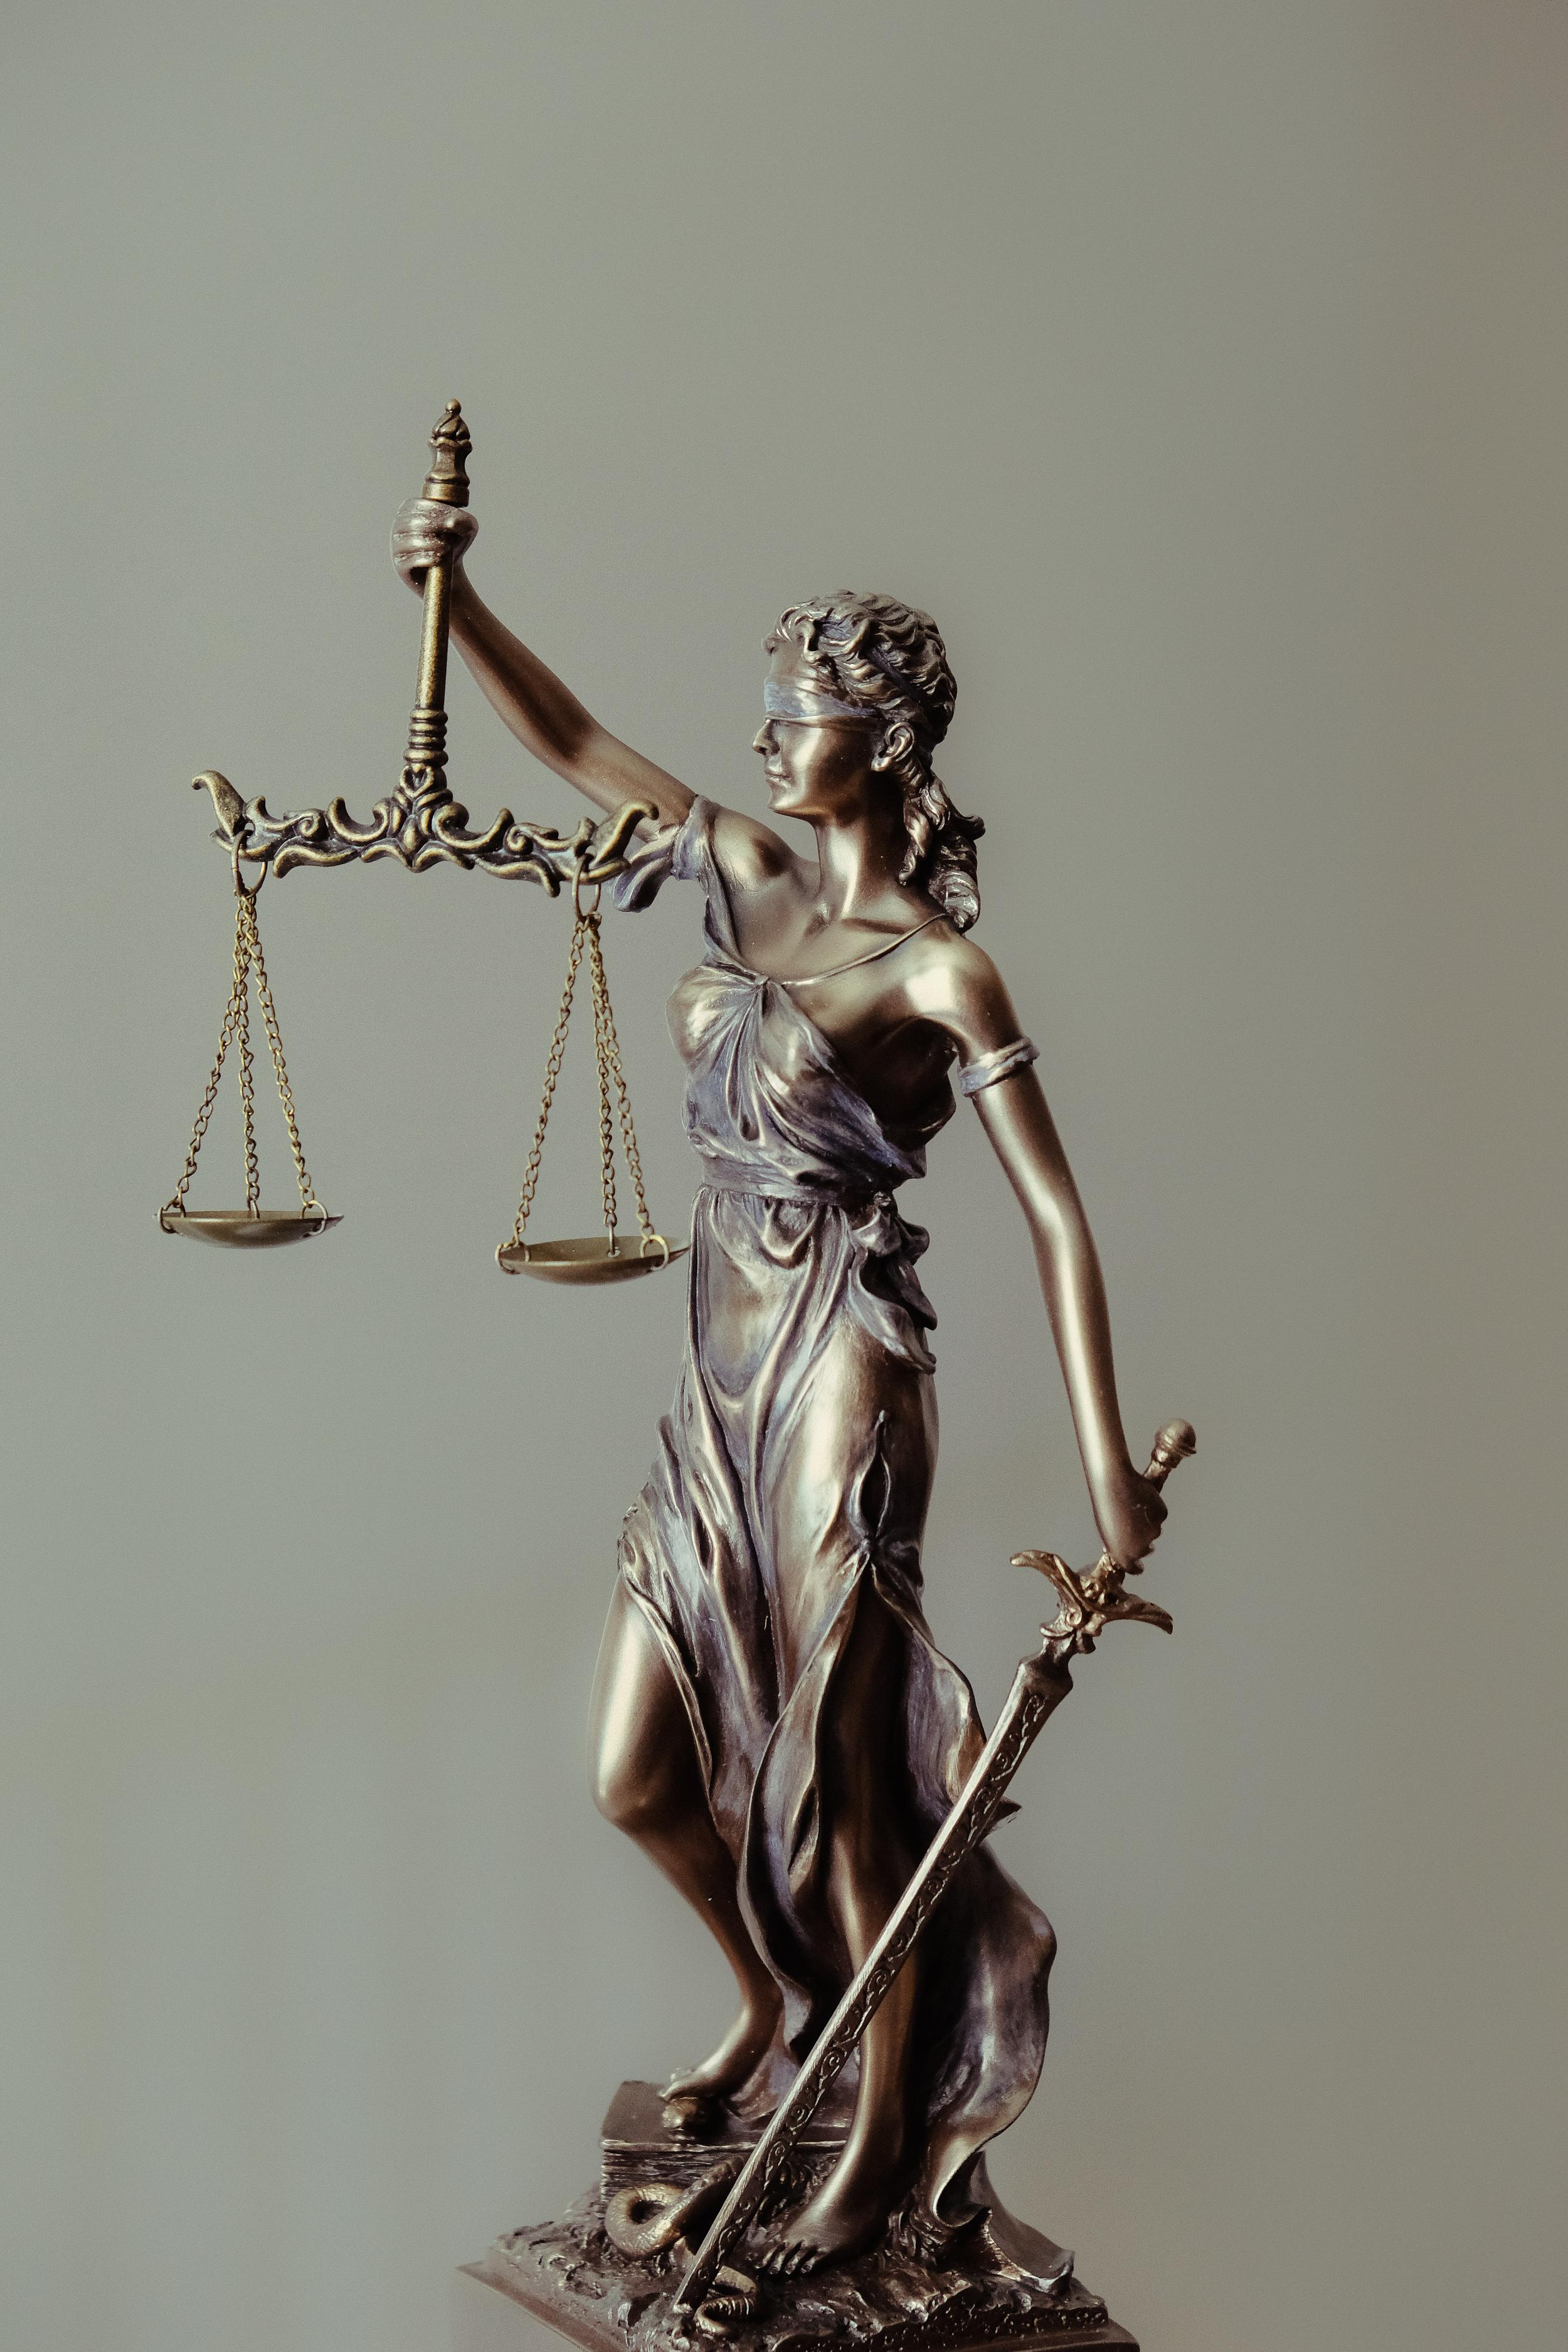 We have the experience and passion to successfully argue your case.